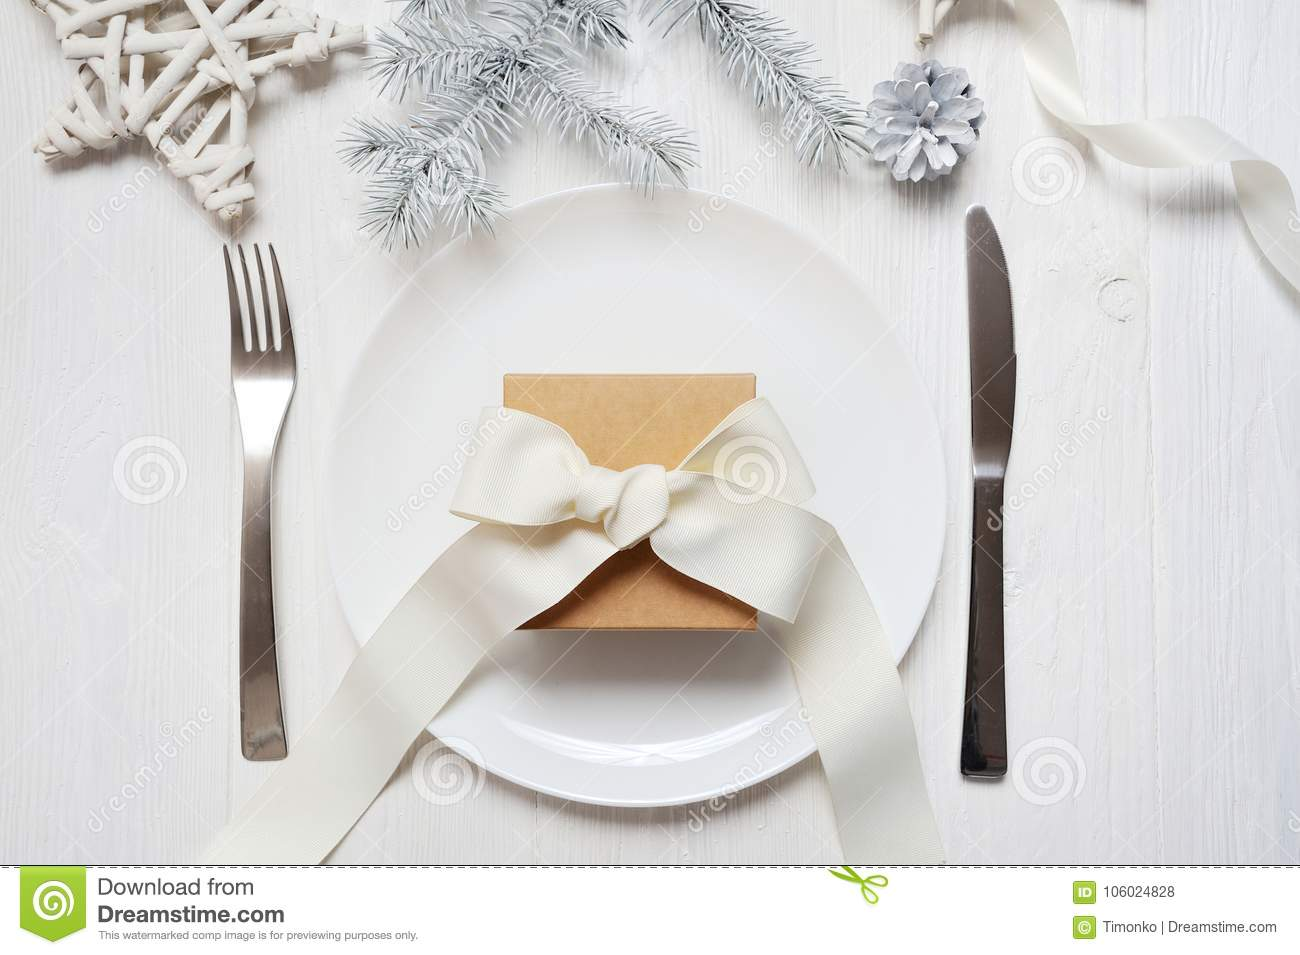 Christmas Table Setting With A Vintage Gift On White Wooden Table